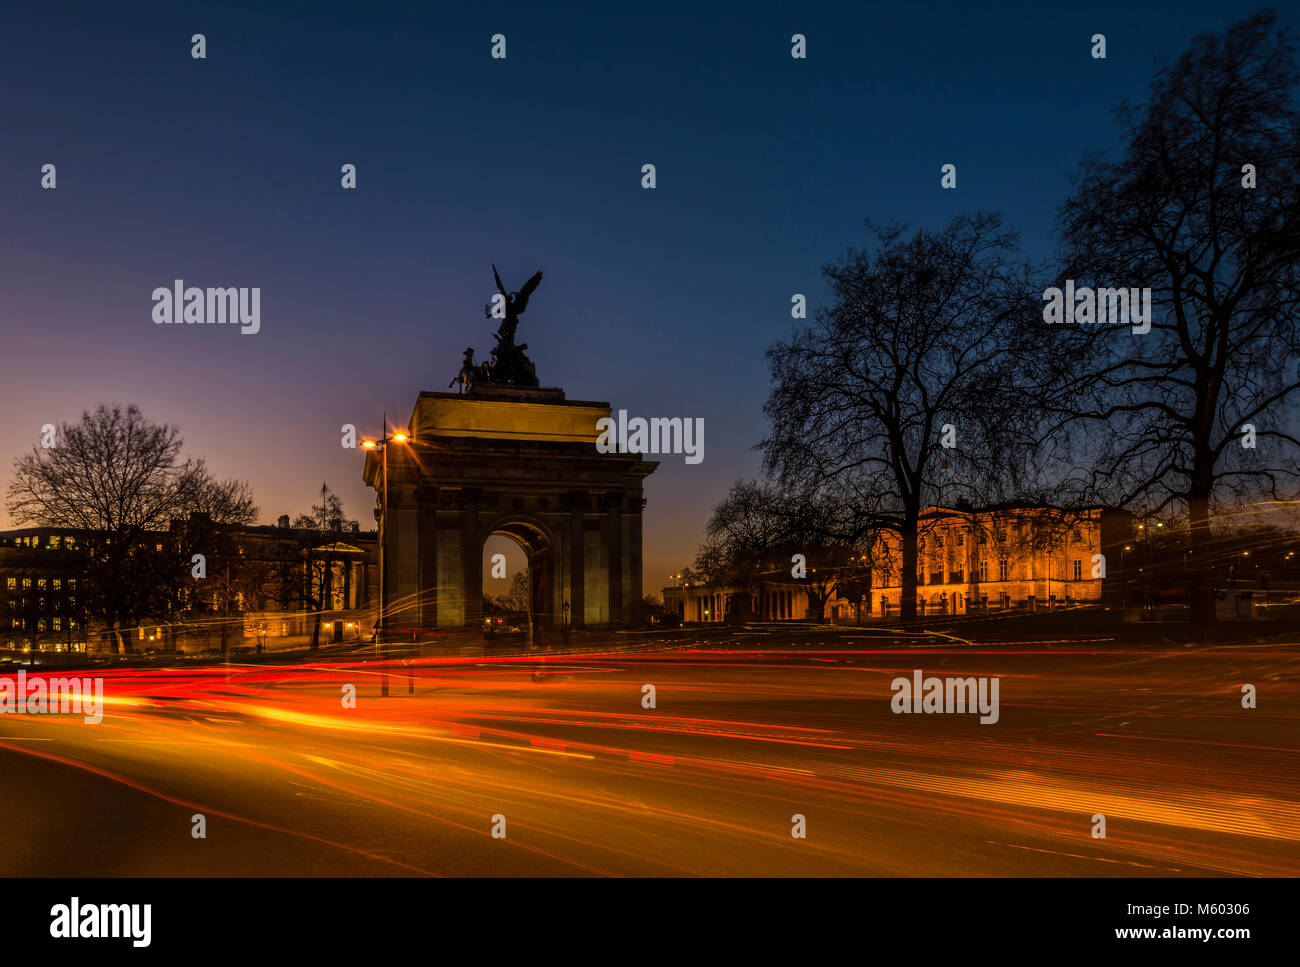 The Wellington Arch after Sunset, Hyde Park Corner, London, UK - Stock Image